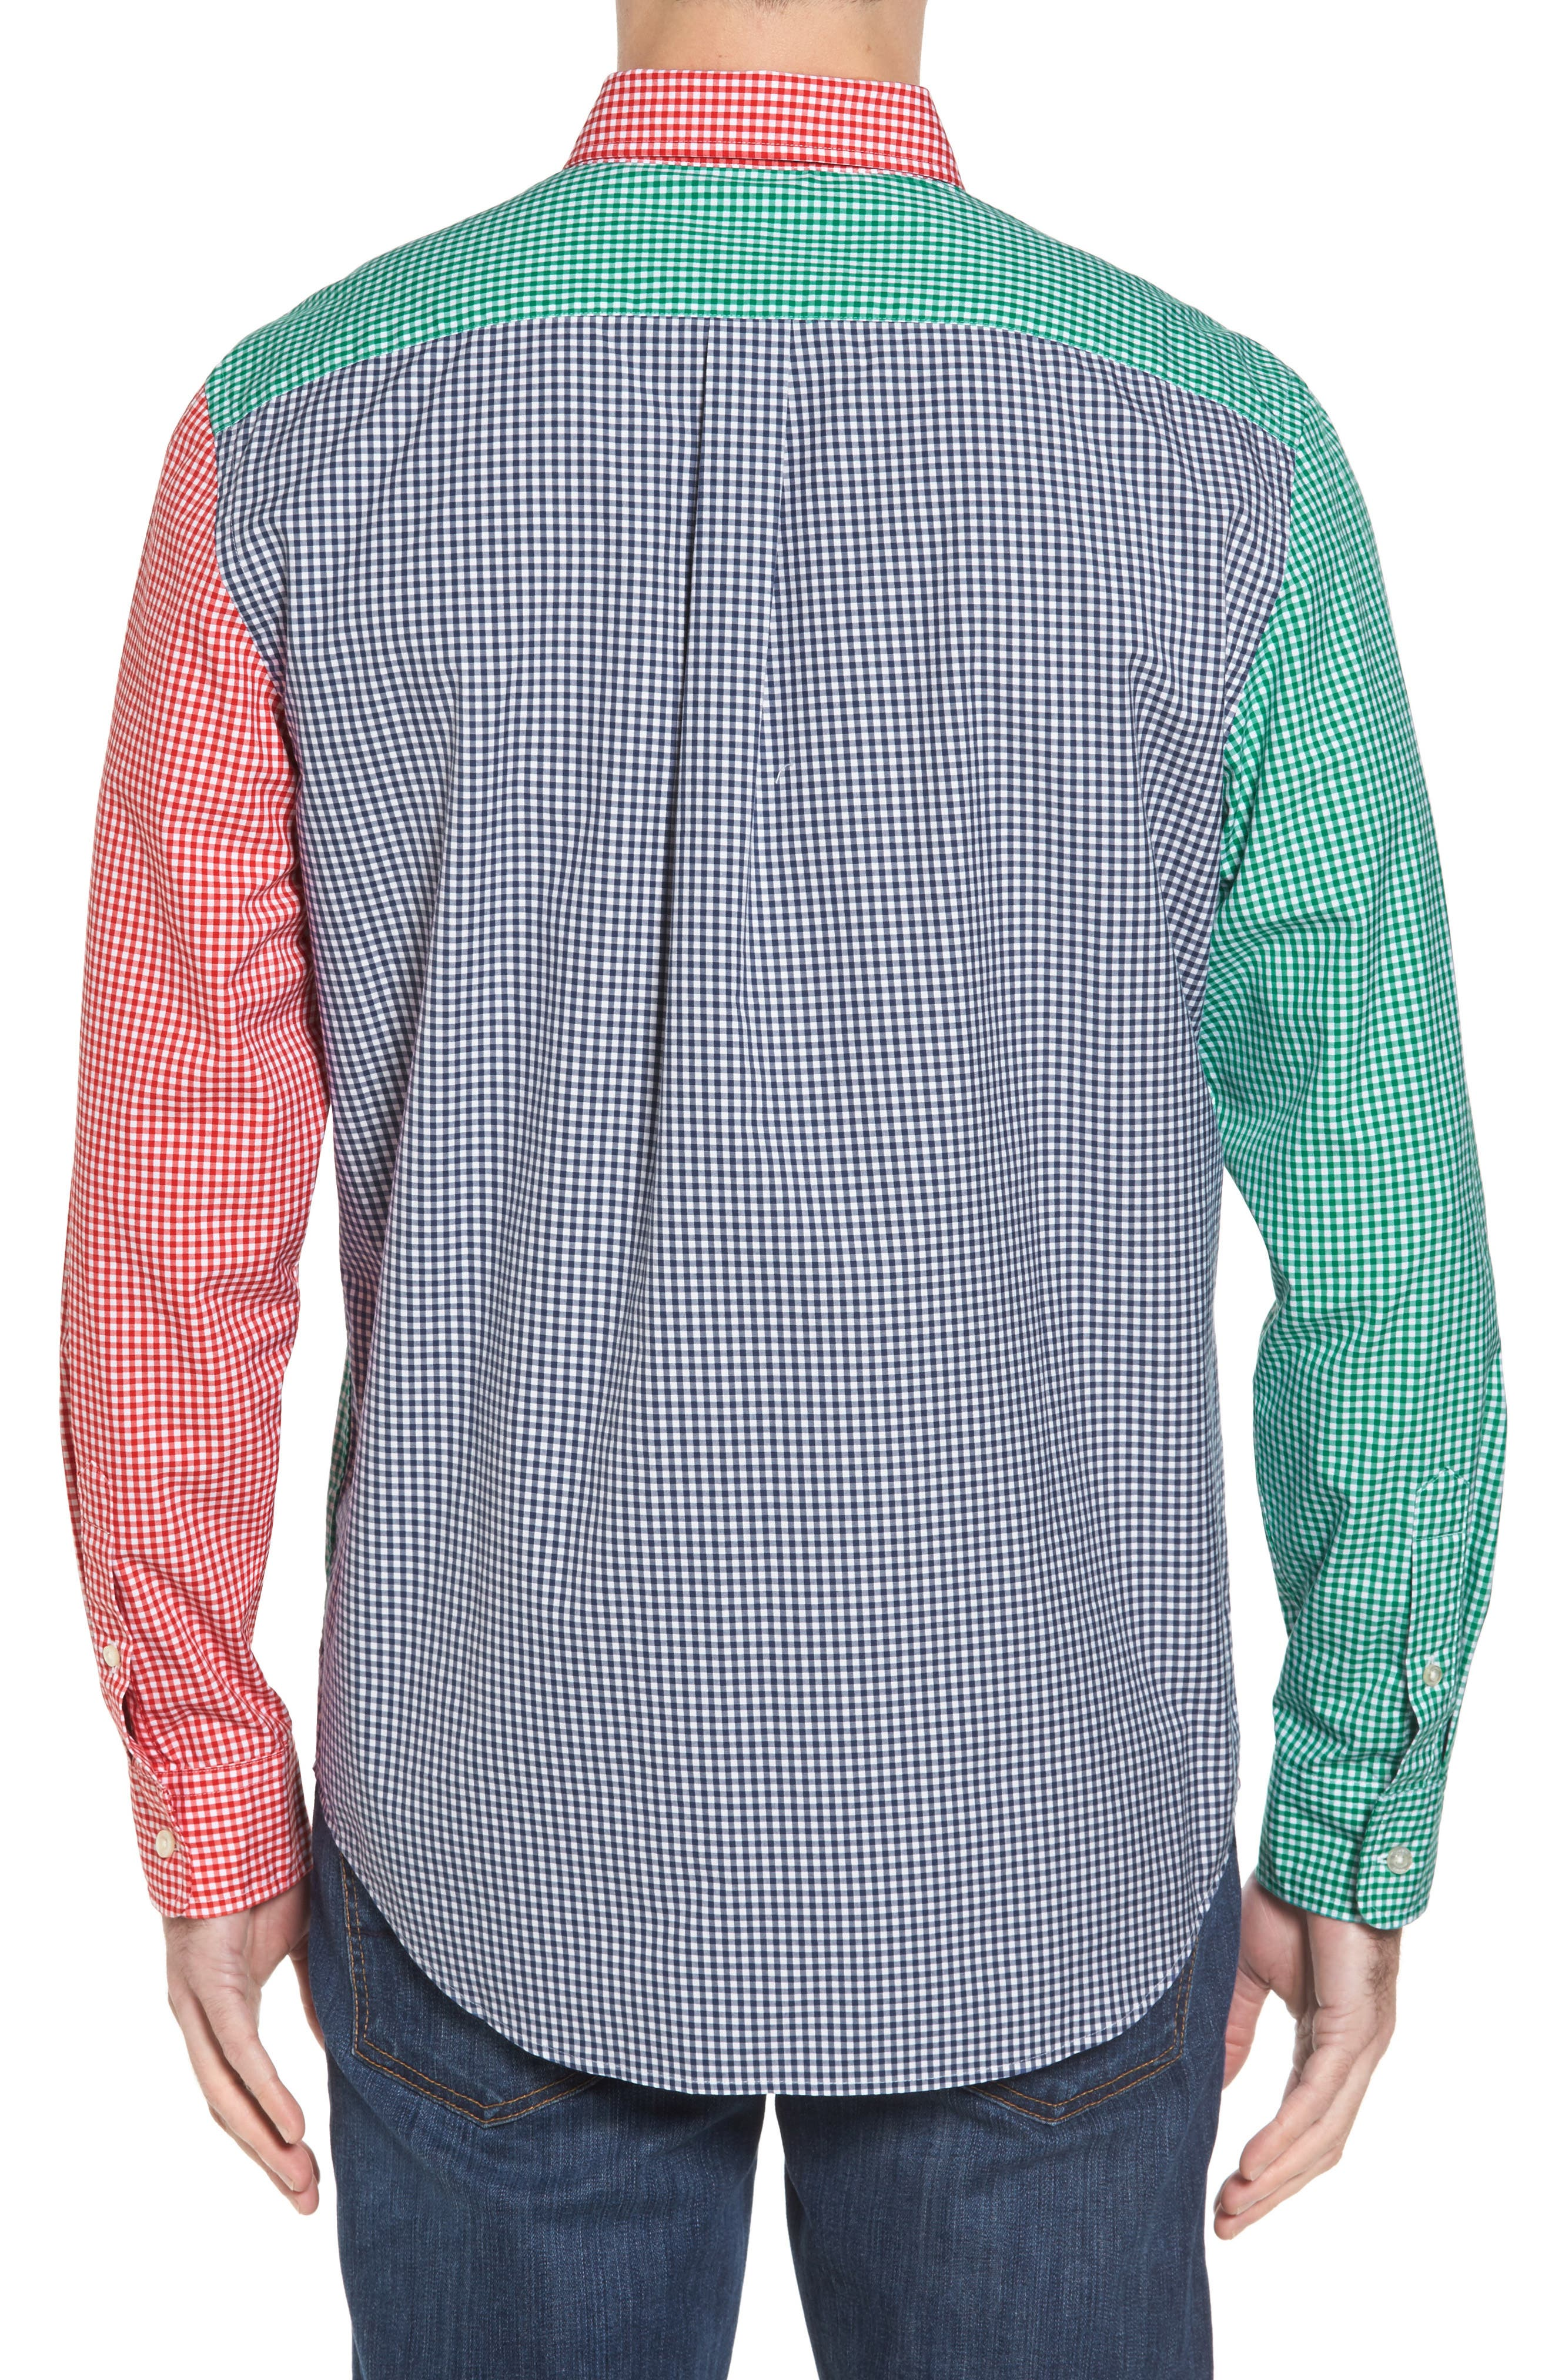 Holiday Party Classic Fit Colorblock Sport Shirt,                             Alternate thumbnail 2, color,                             Multi